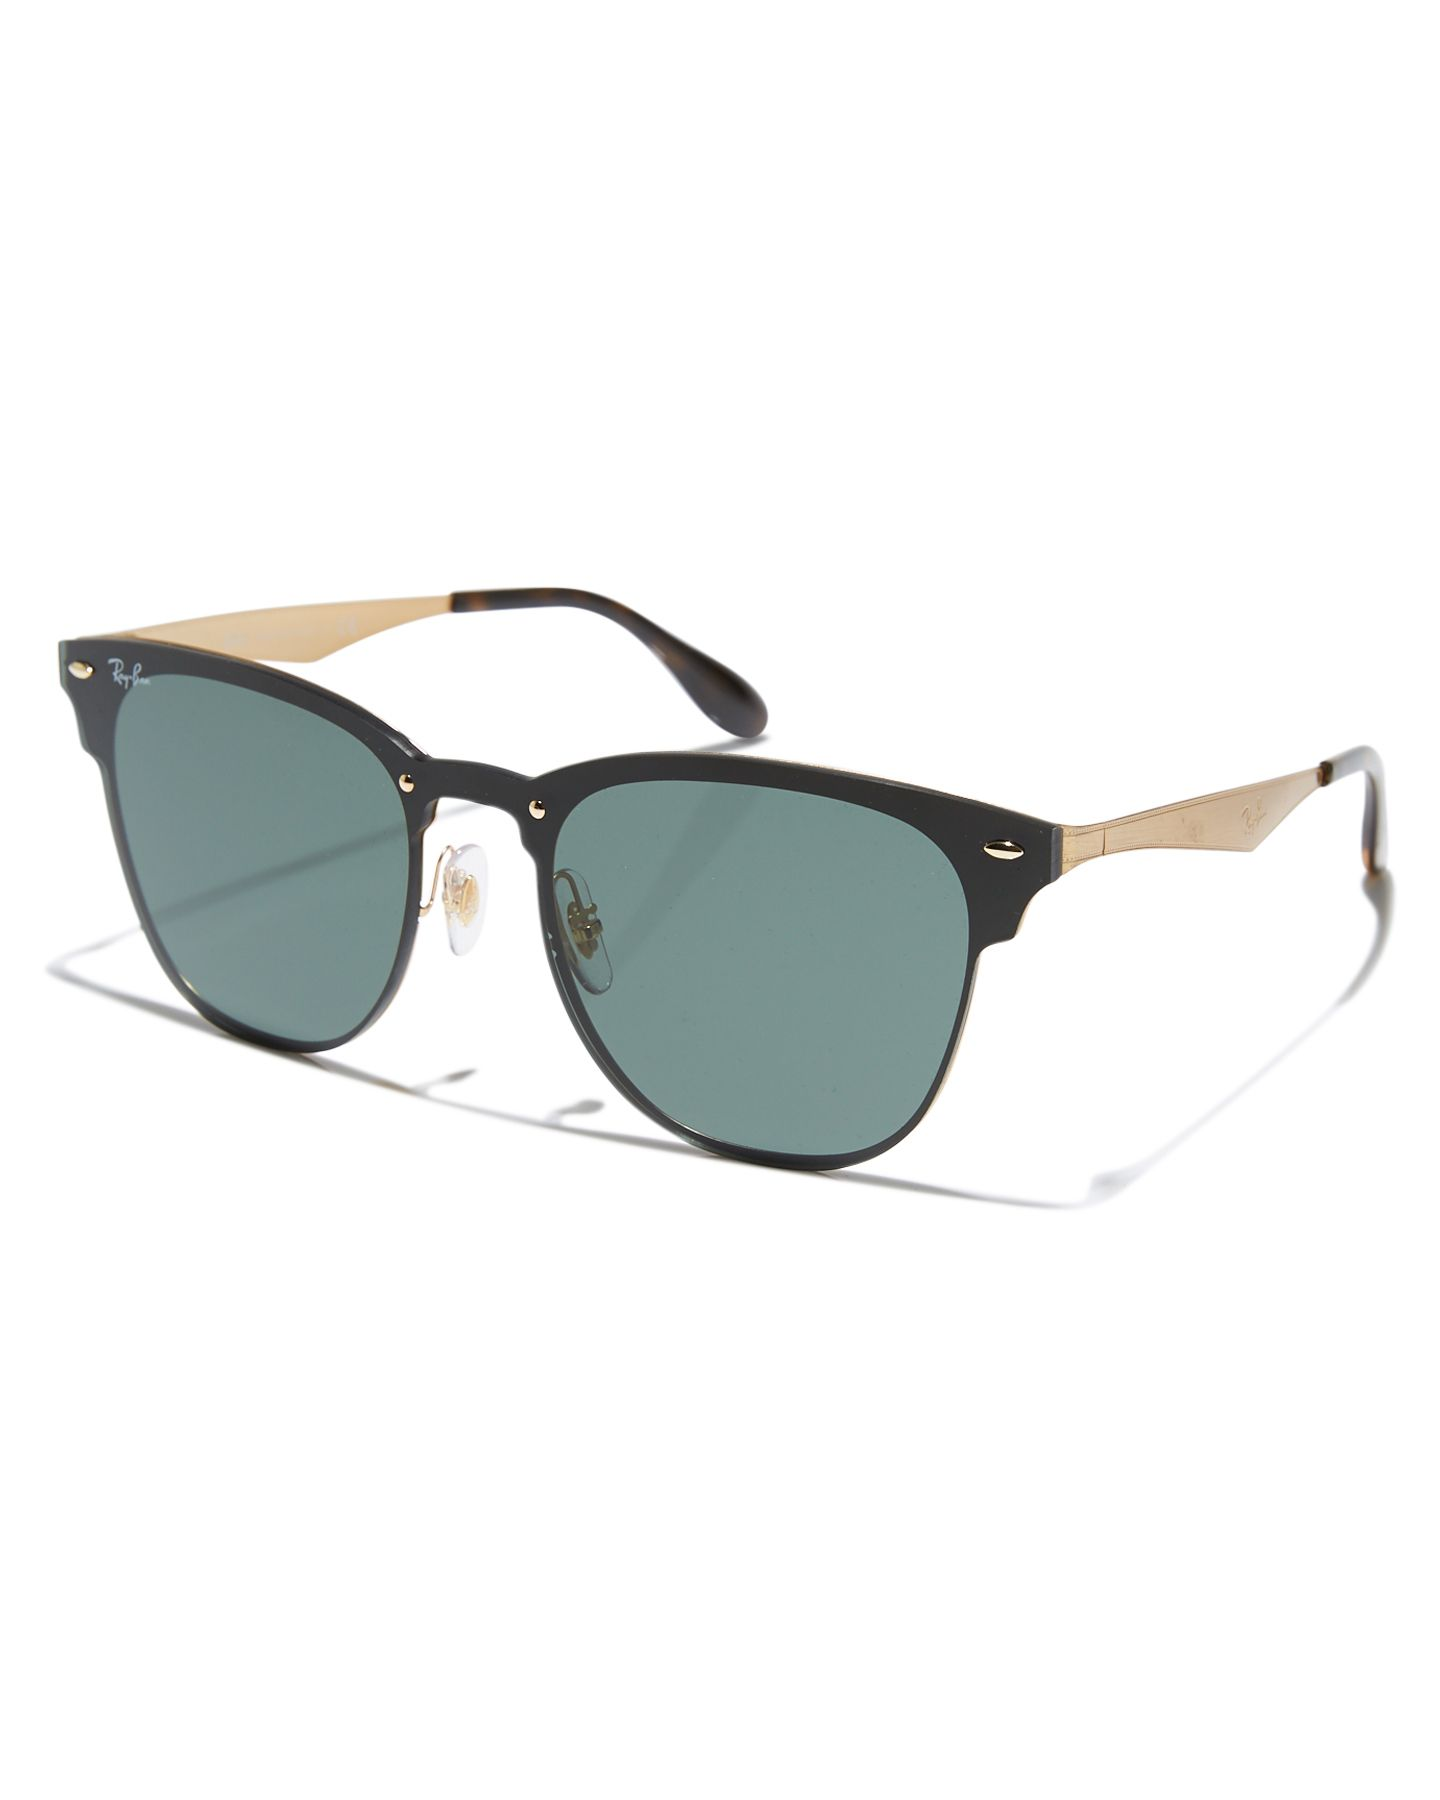 78c7787b2ba Ray-Ban Clubmaster Blaze Sunglasses - Brushed Gold